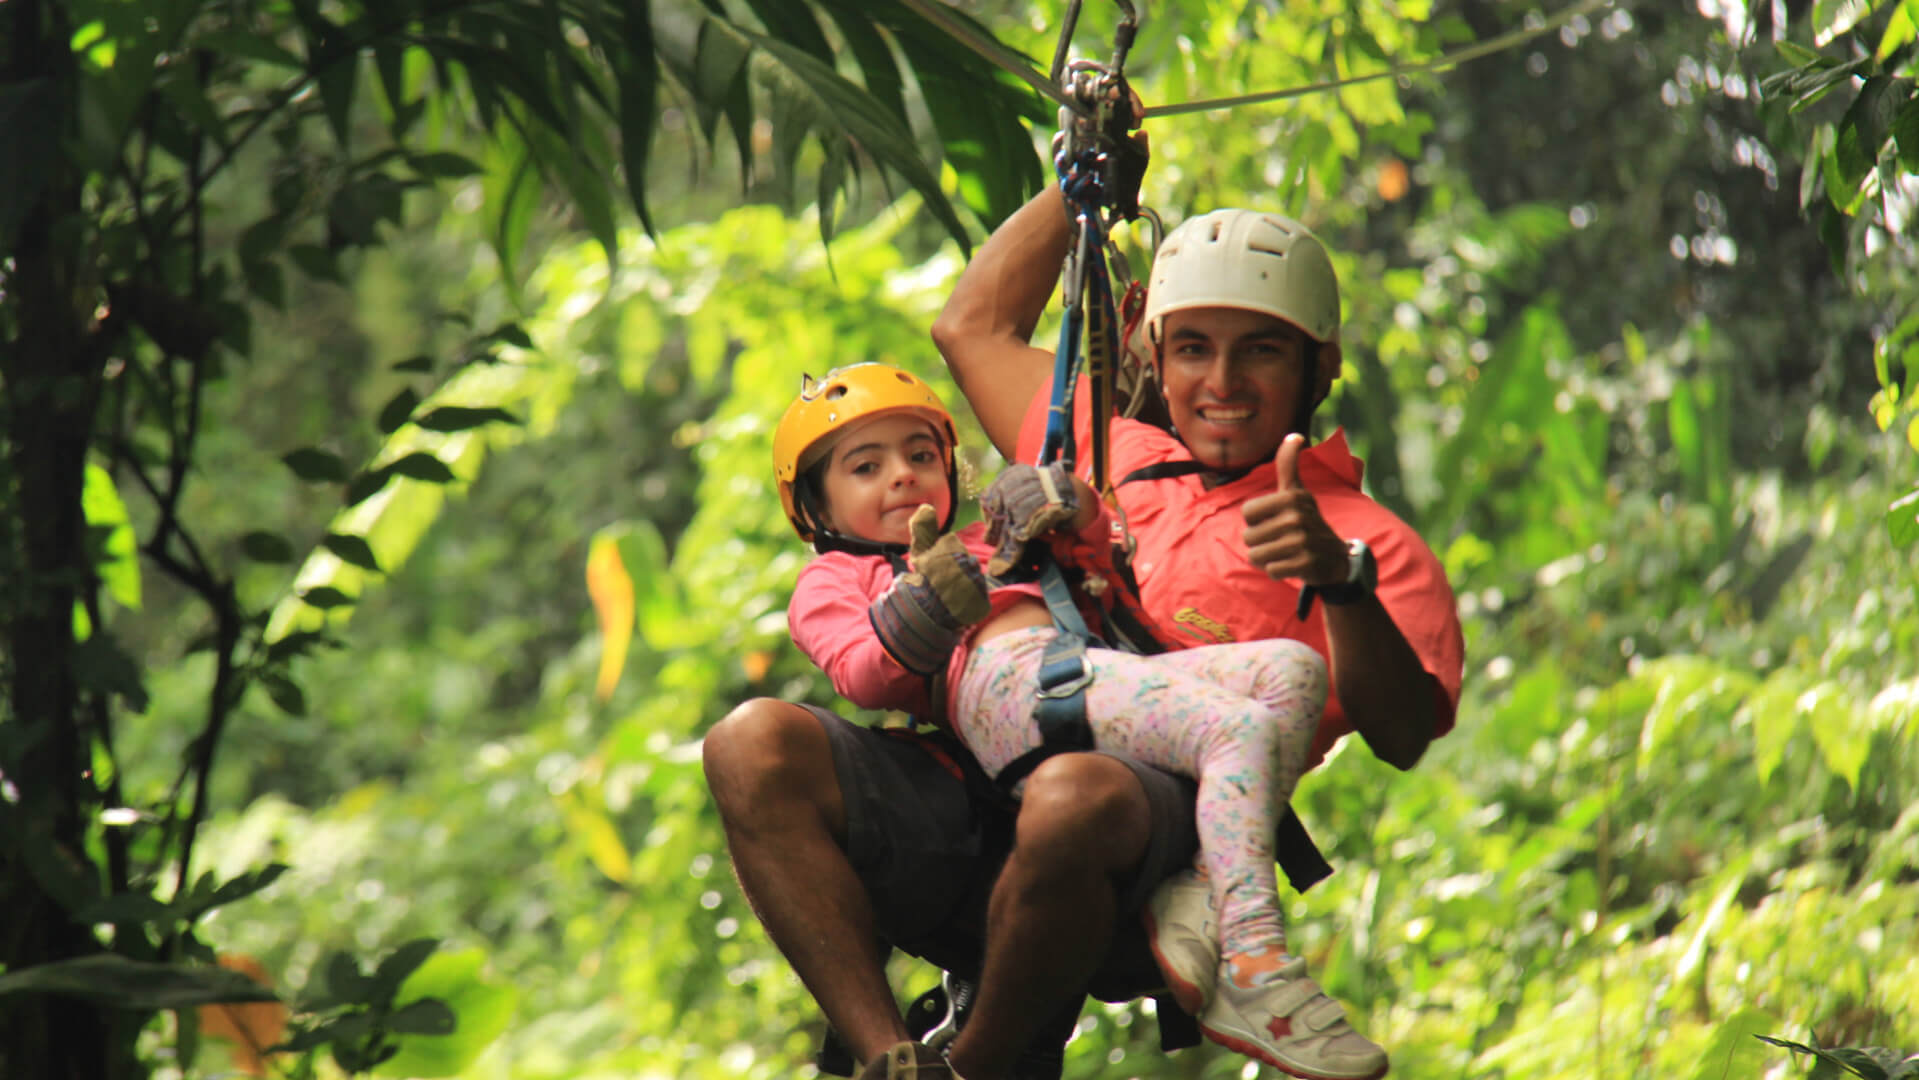 A child zipping in Tandem with a guide at the Arenal Ecoglide Canopy Tour